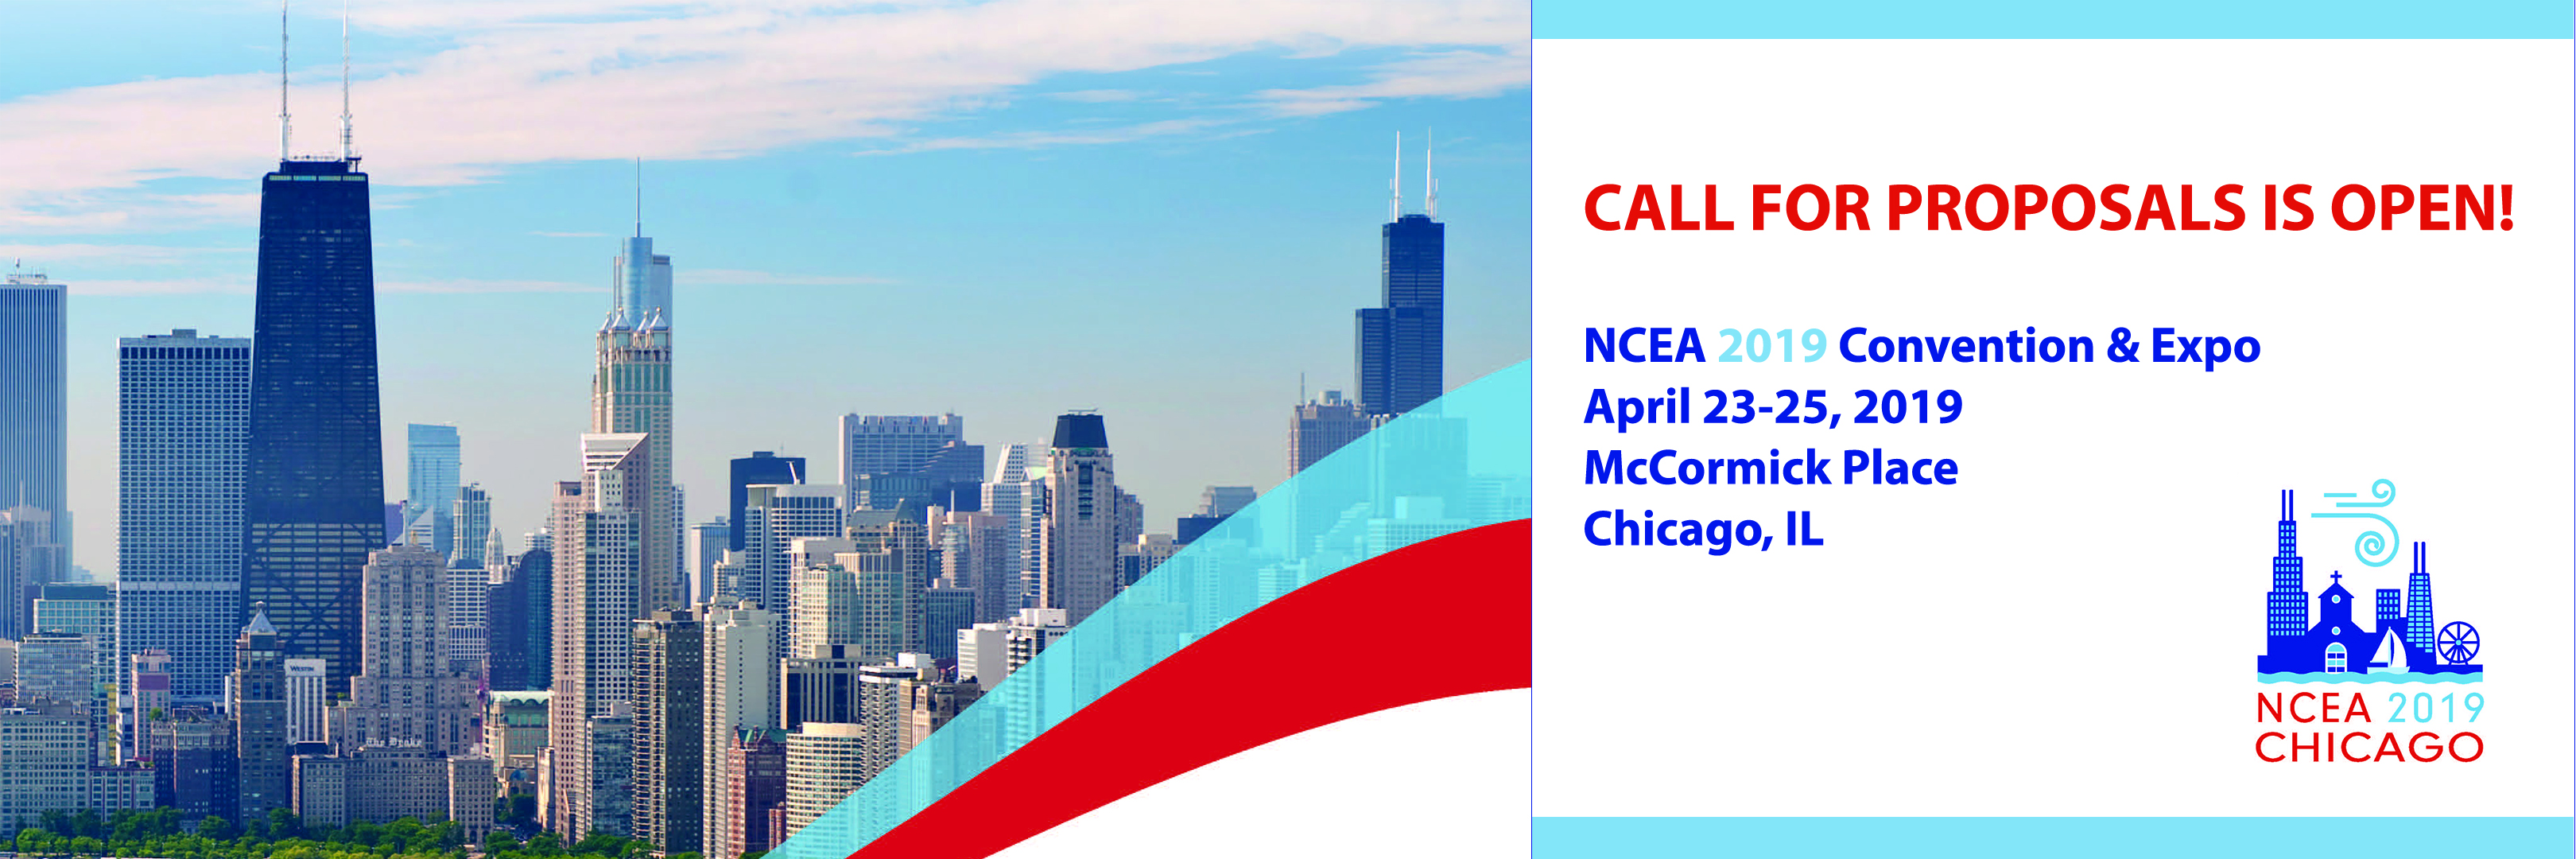 How Is Your NCEA 2019 Proposal Coming Along?